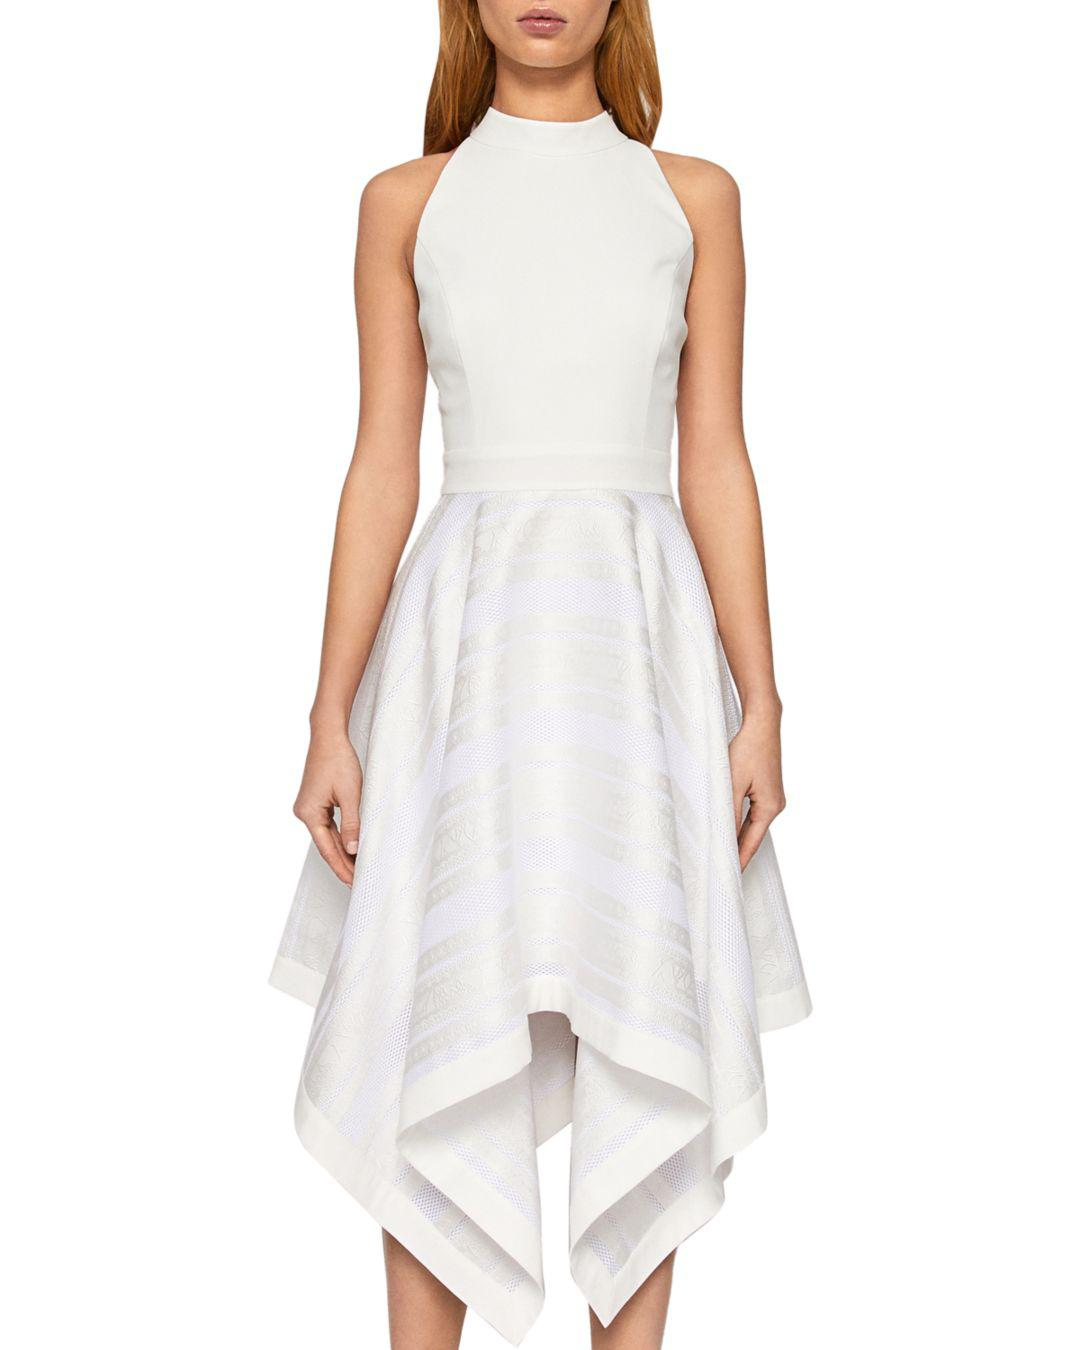 6cd42f1325bd2 Lyst - Ted Baker Ayesaa Handkerchief-hem Dress in White